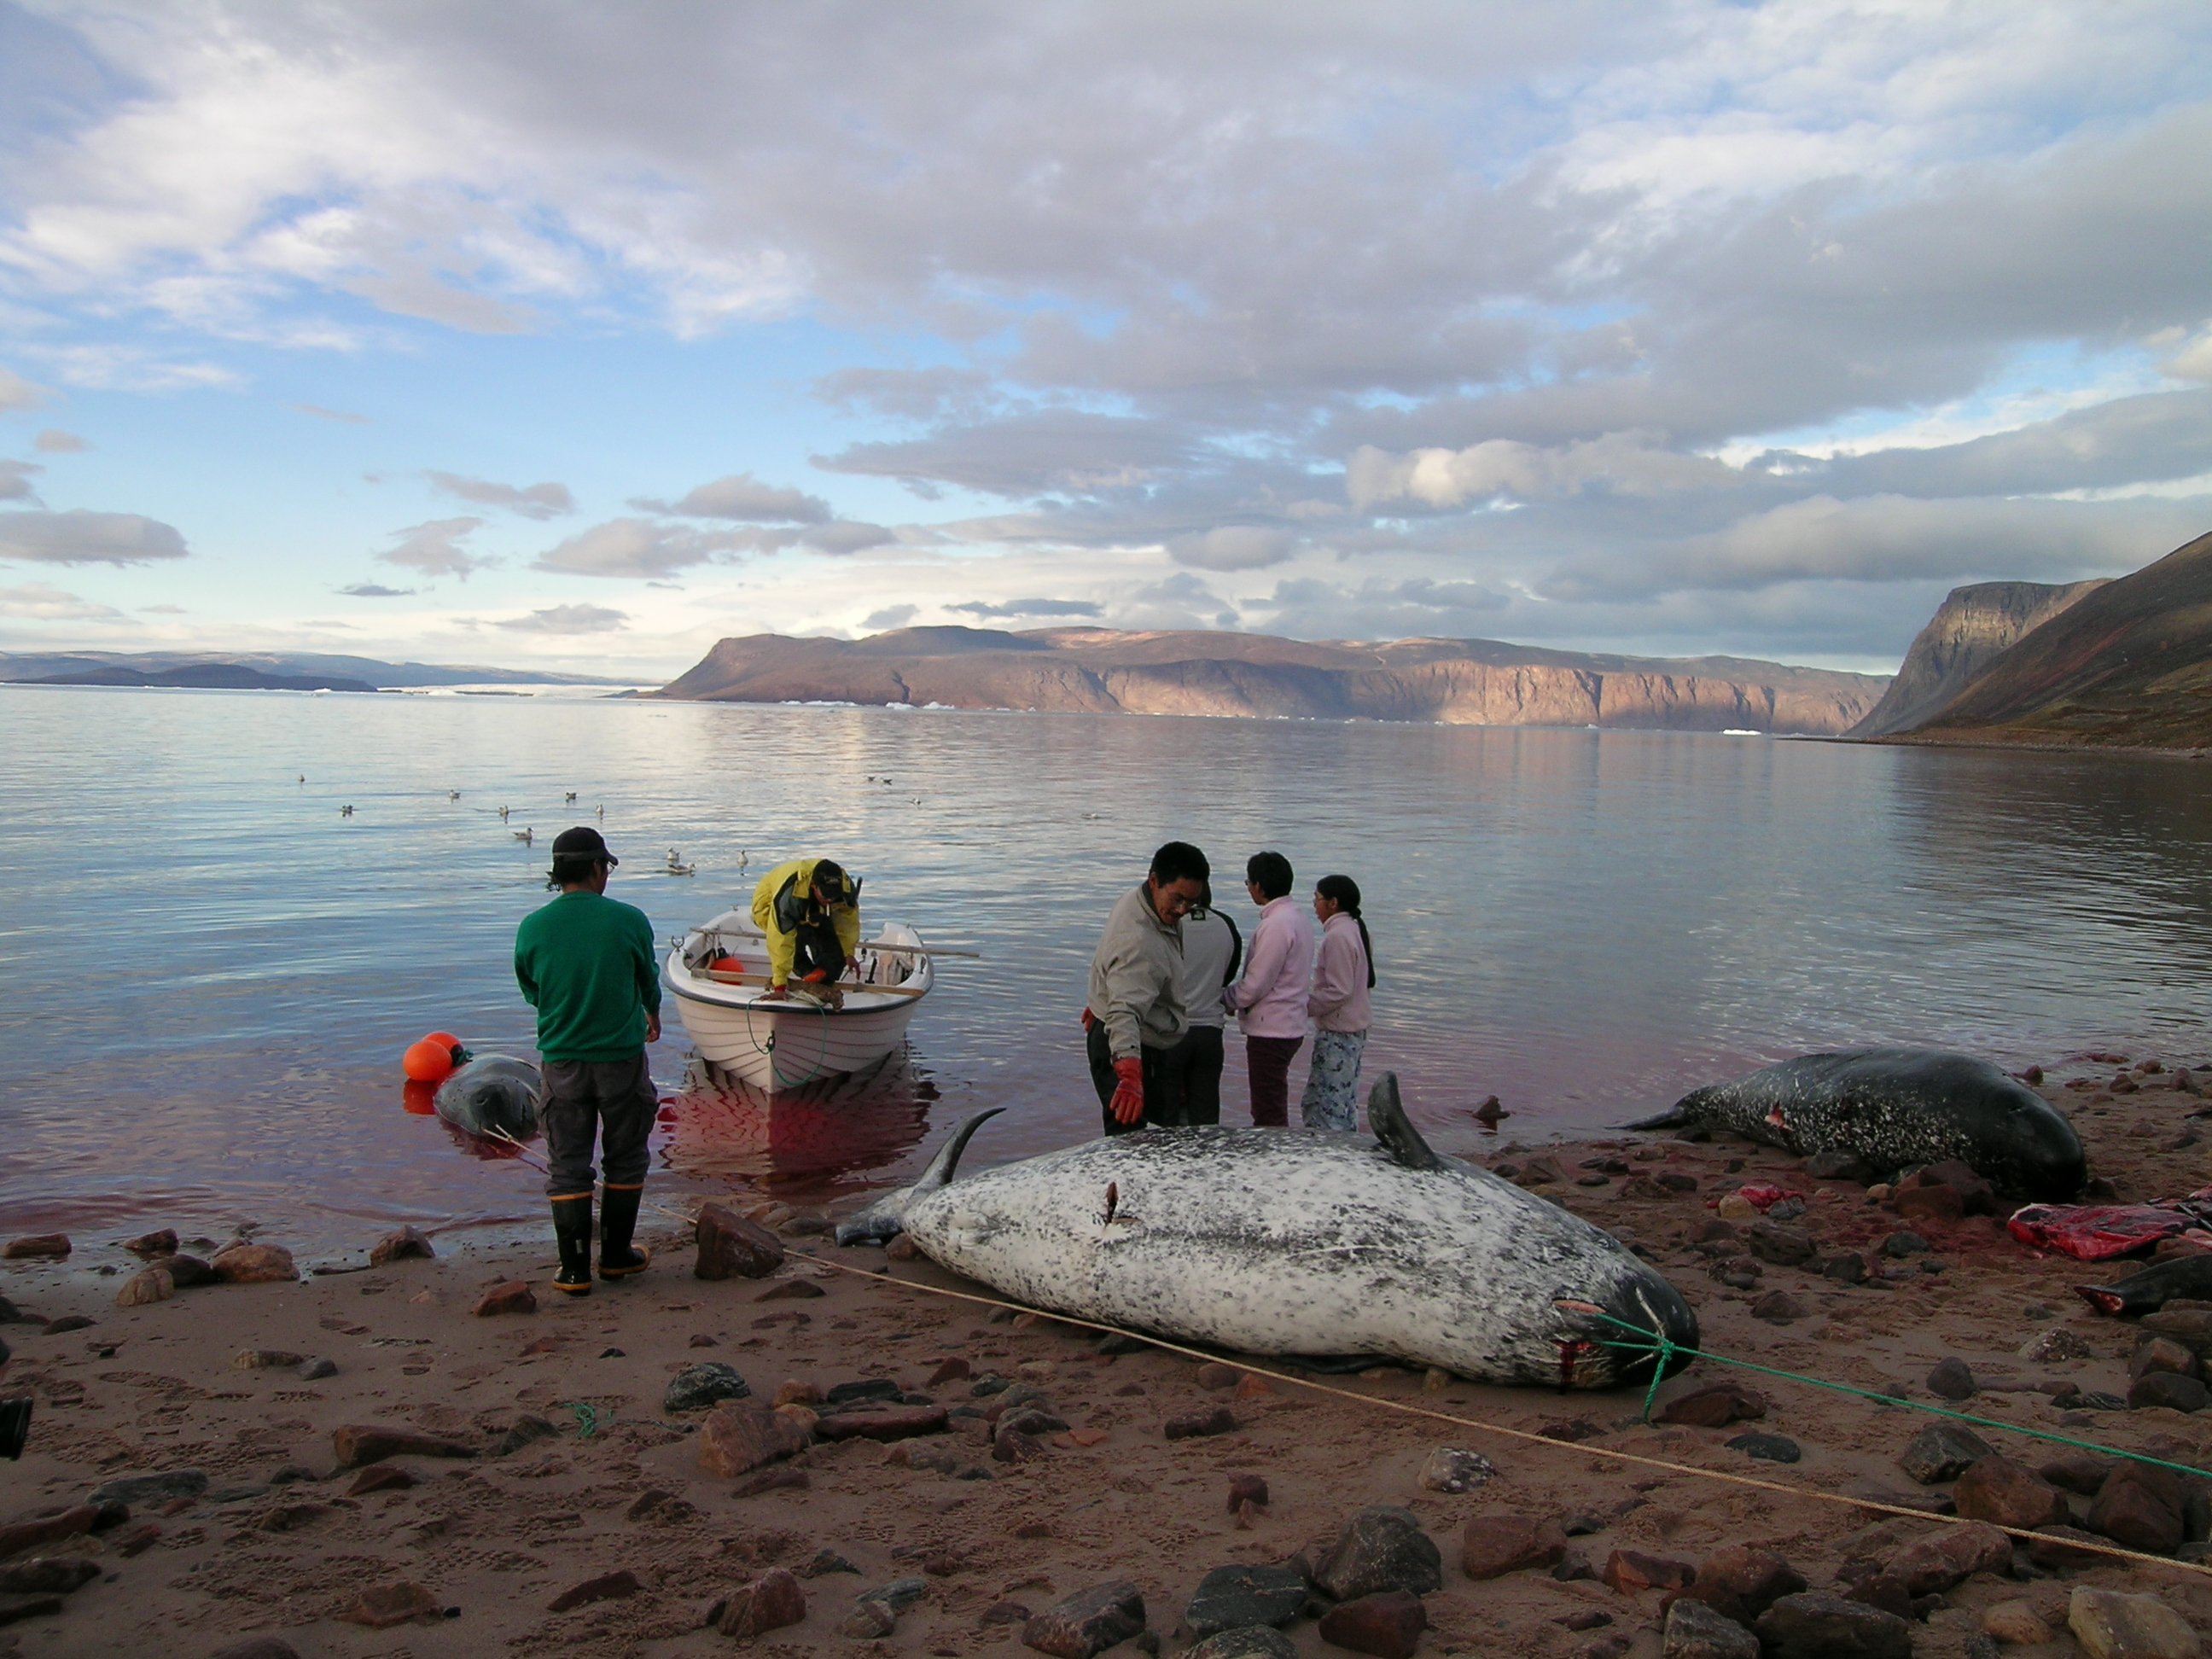 How debris from rockets launched far away is a risk to Inuit food security